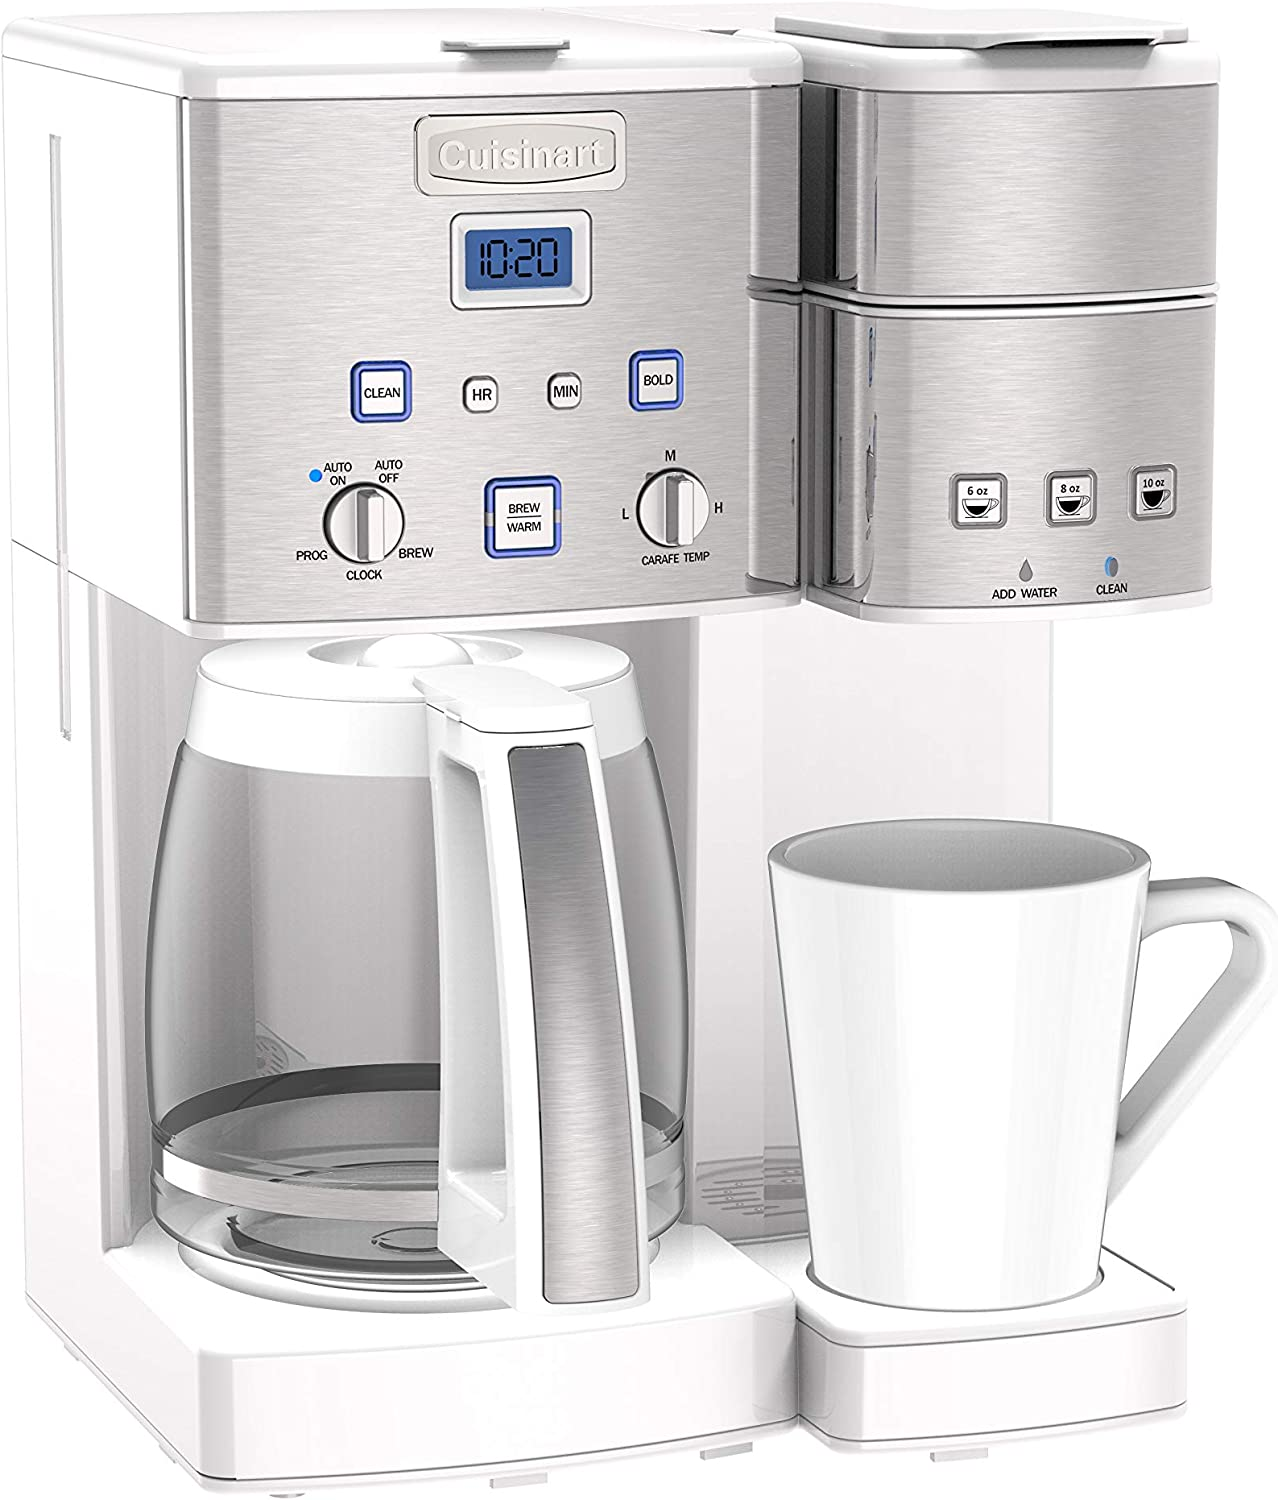 Cuisinart SS-15W Maker Coffee Center 12-Cup Coffeemaker and Single-Serve Brewer, White Stainless Steel